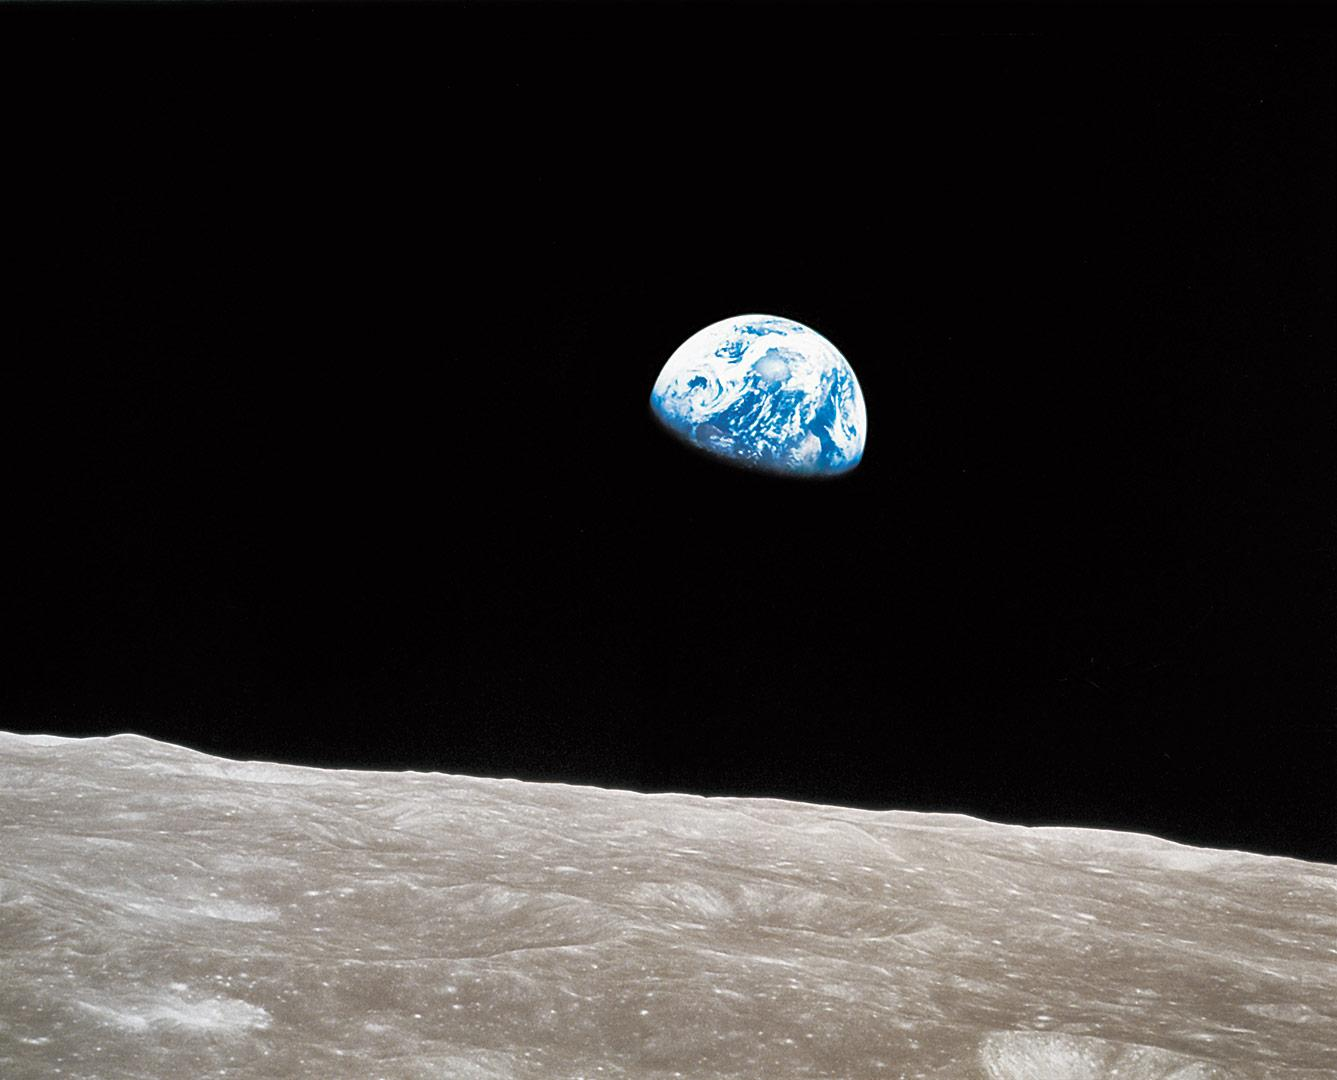 Photo of the Earth rising in the sky with the Moon in the foreground